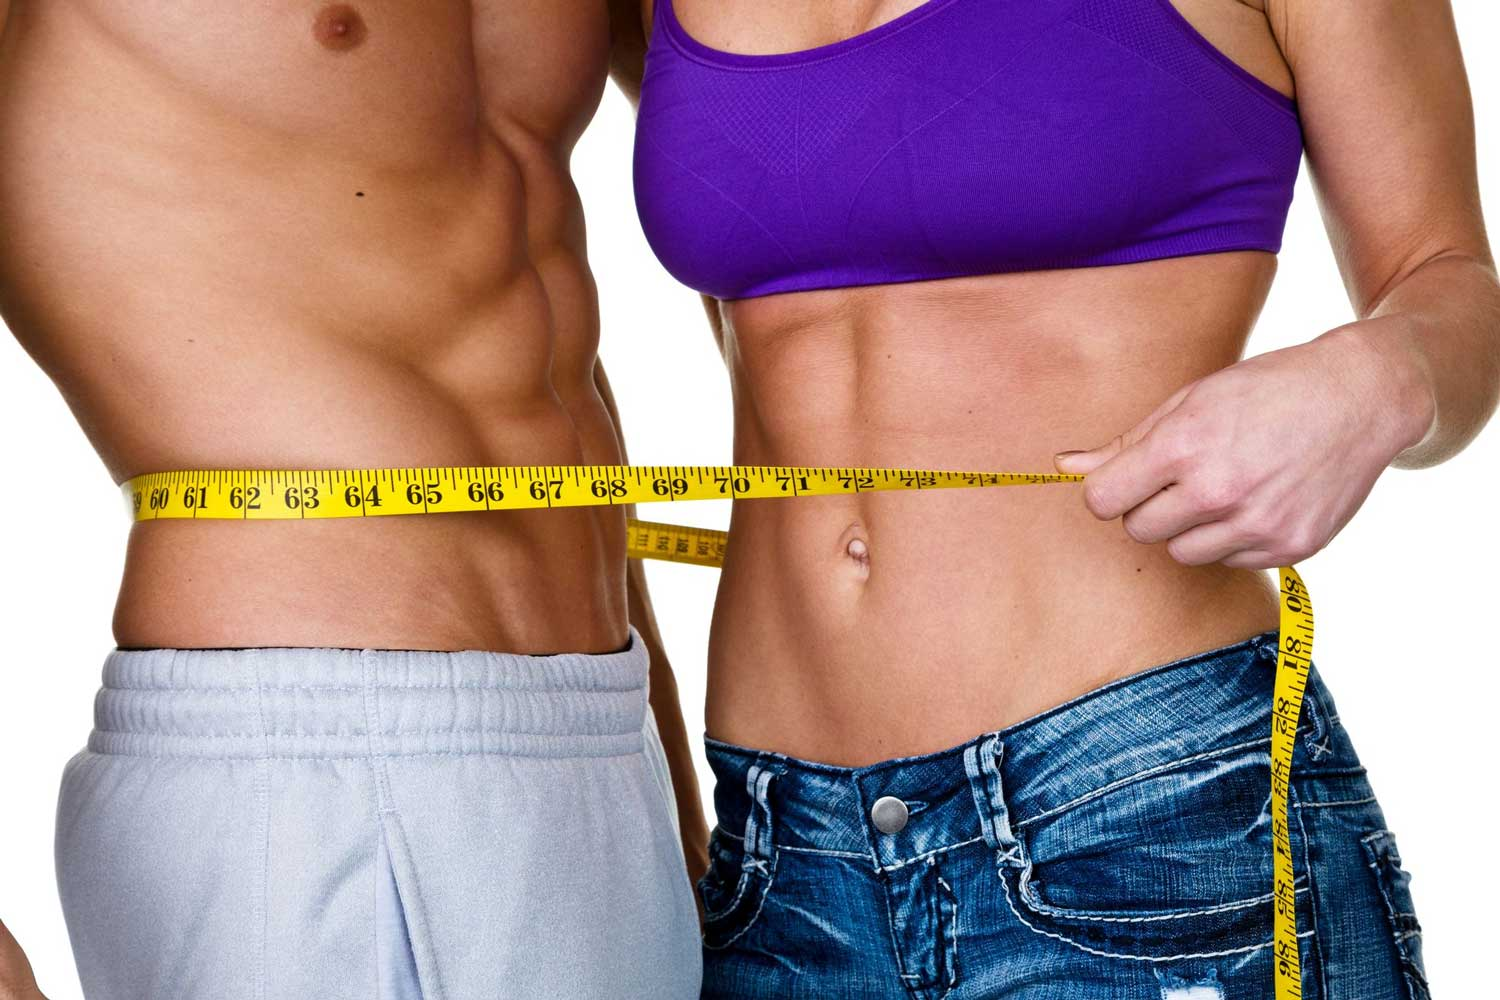 Protein Supplements Help Build Muscle & Lose Weight